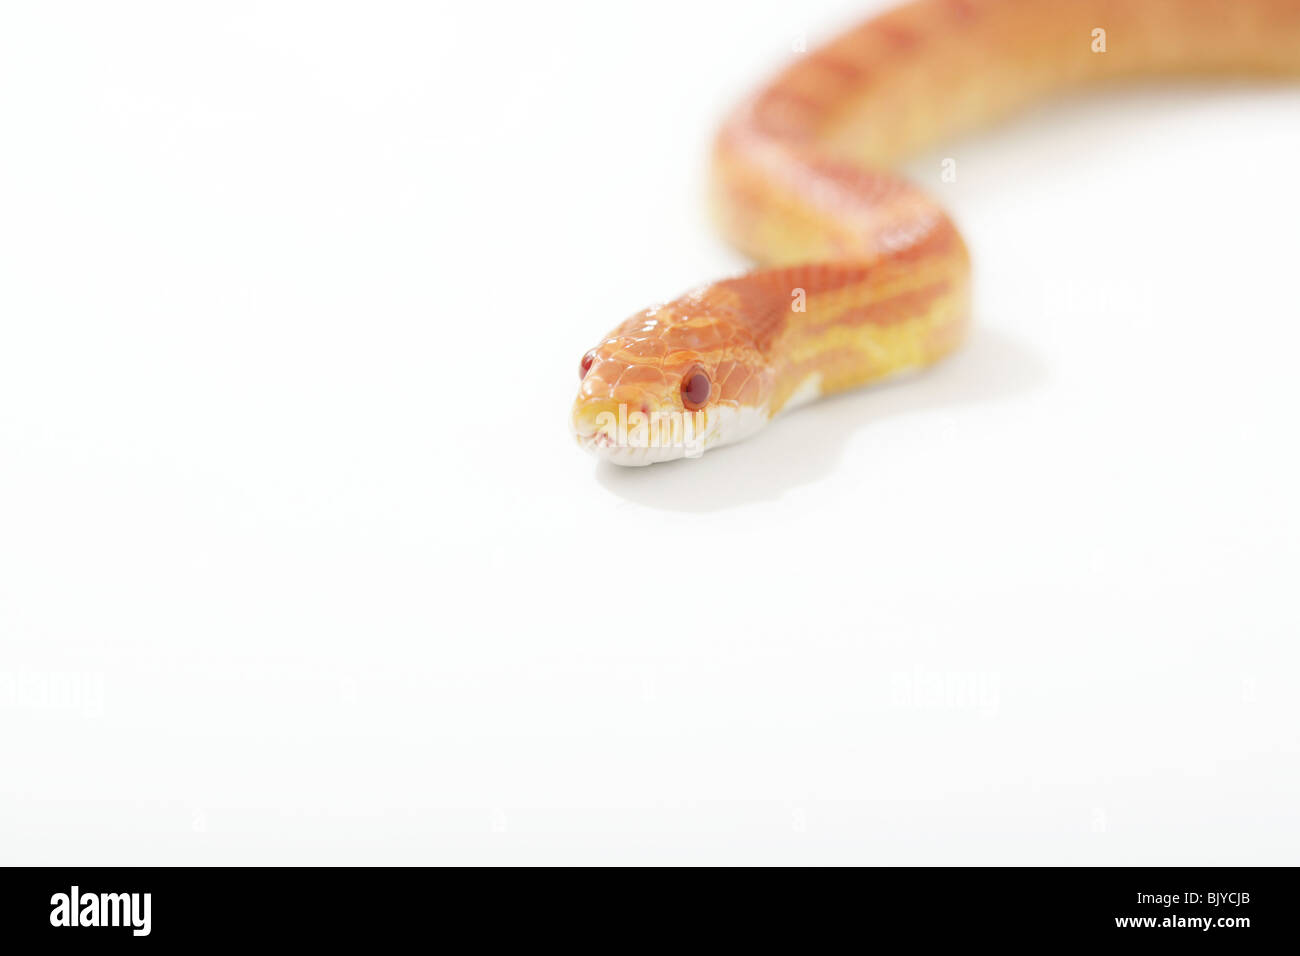 Corn snake photographed on a white background Stock Photo